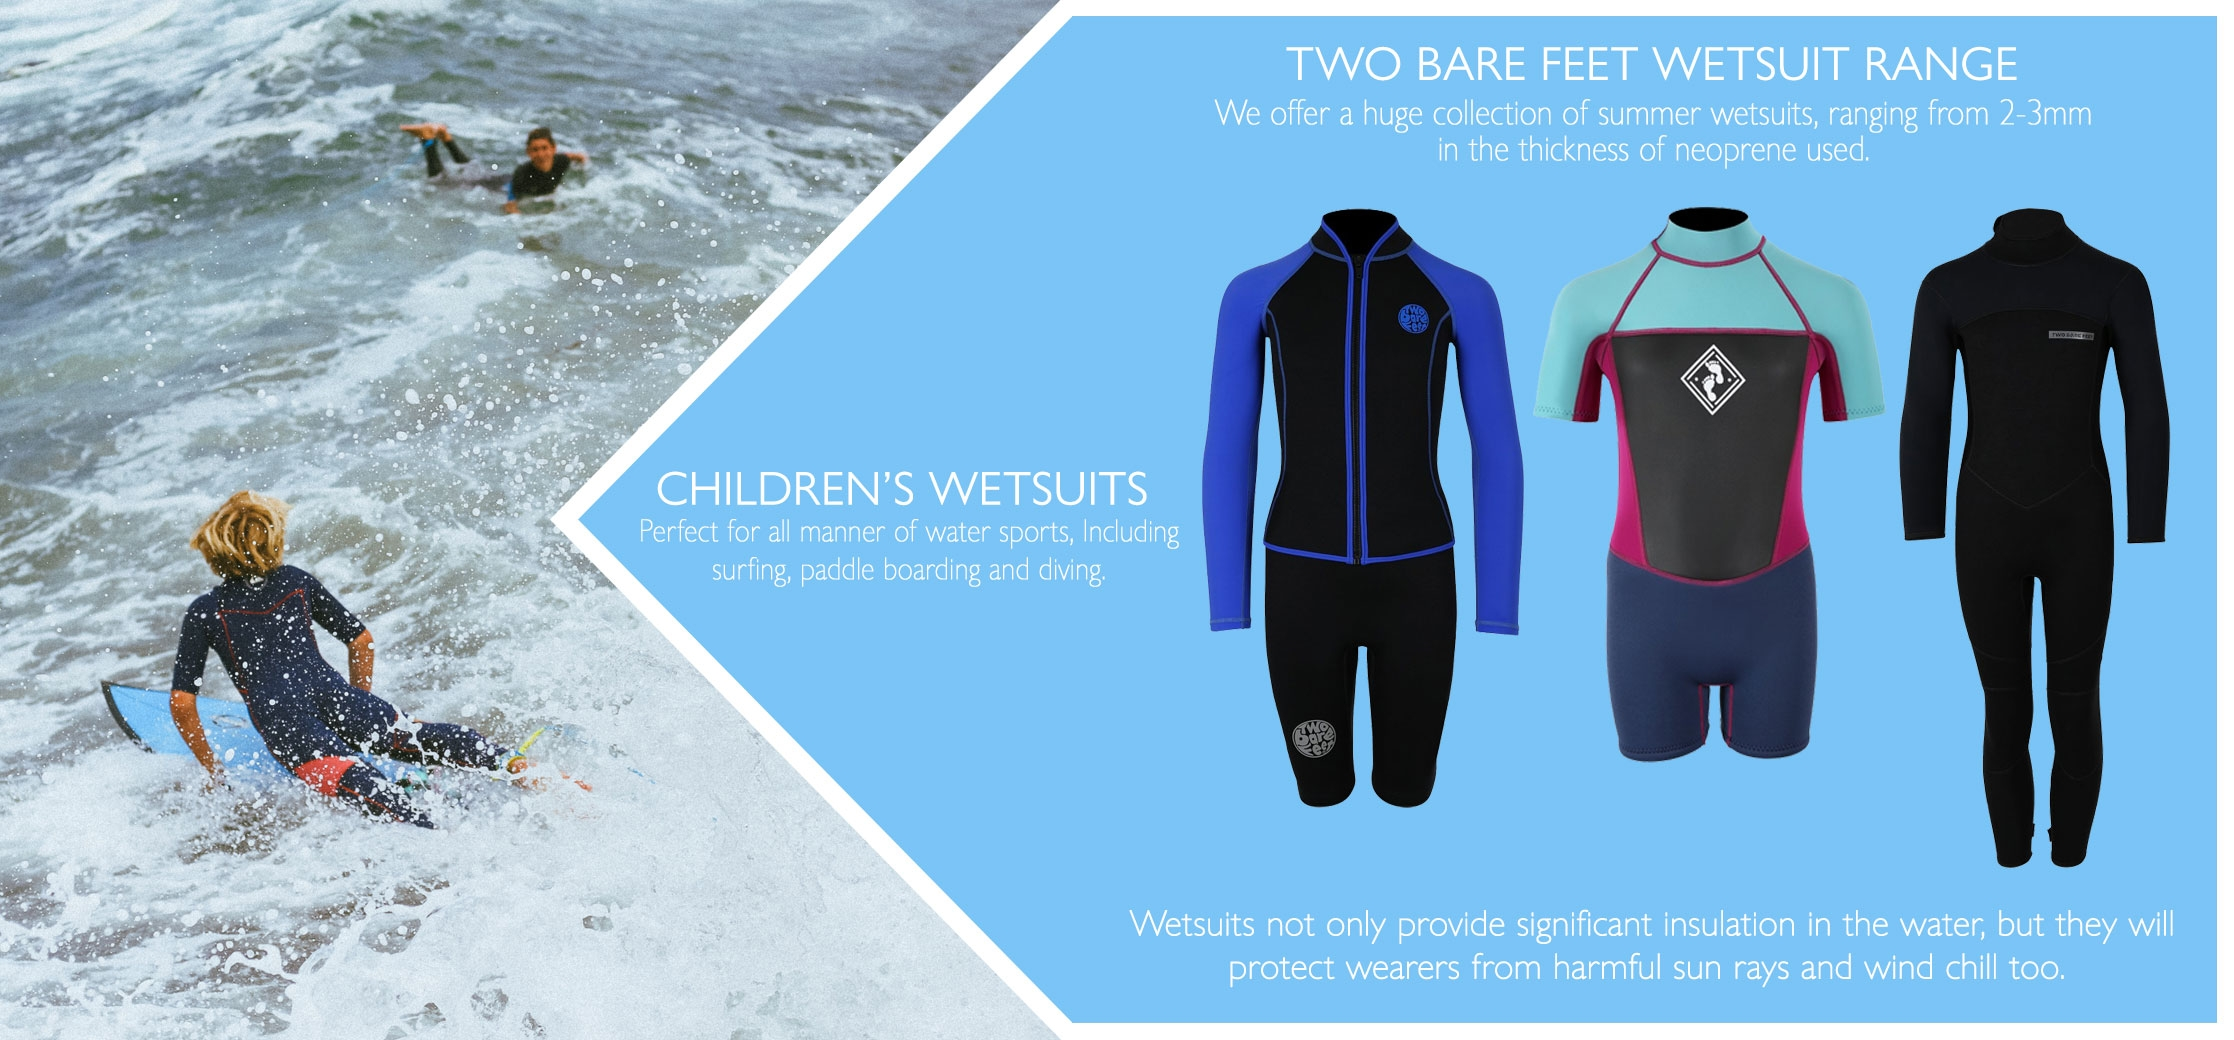 Children's wetsuits information